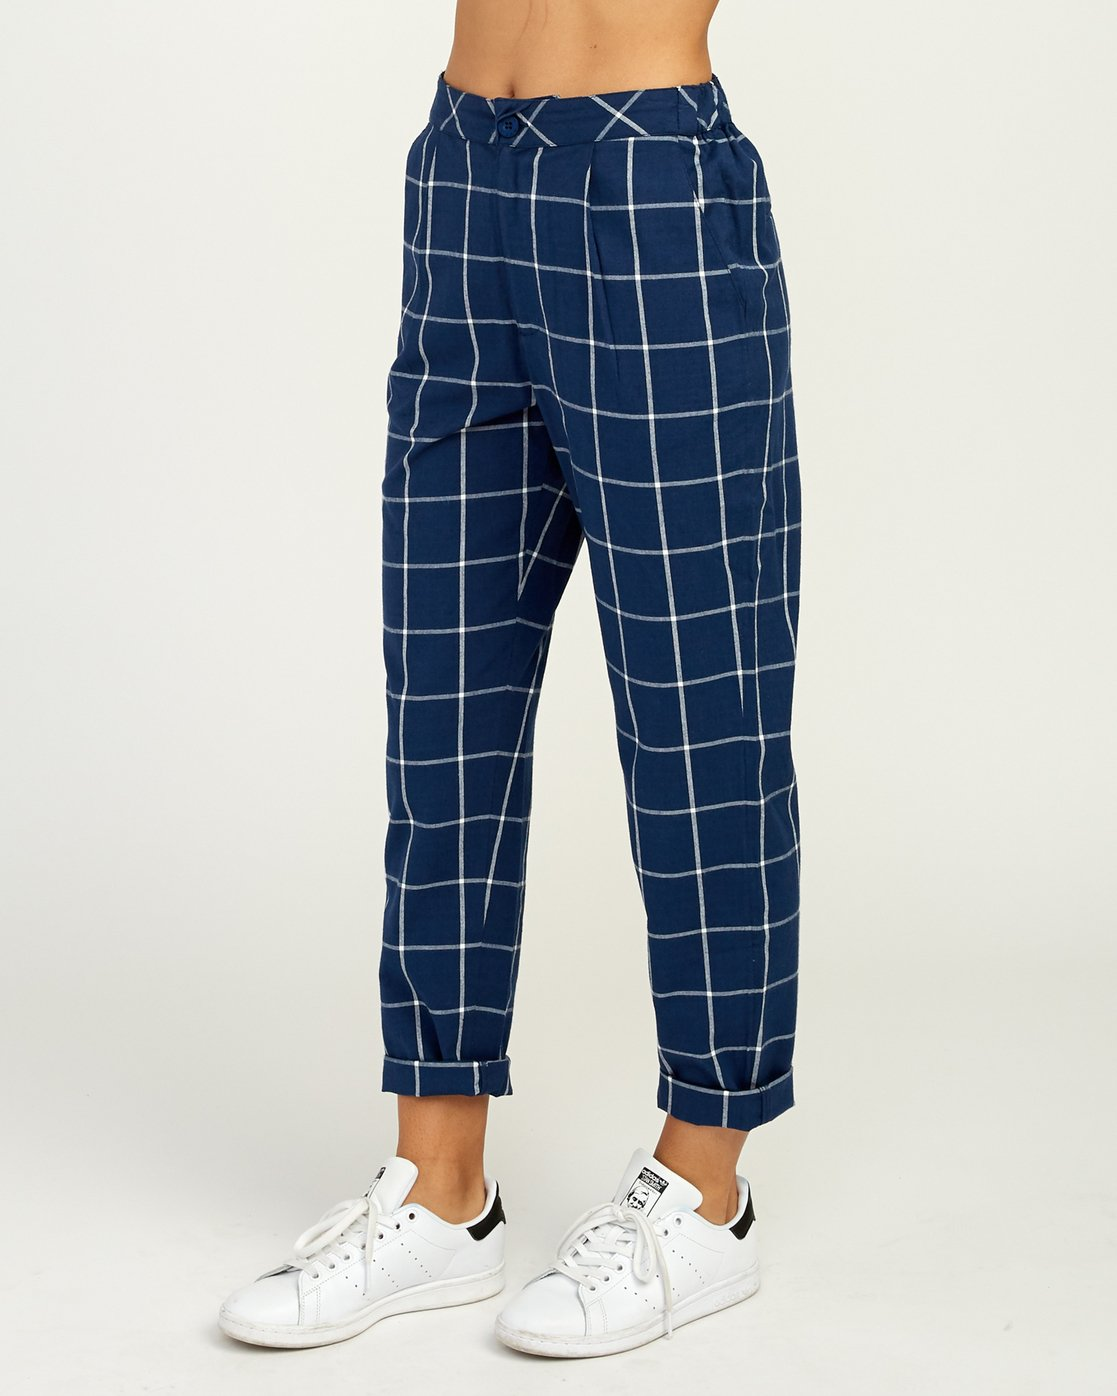 4 Hey Now - Grid Trousers for Women Blue N3PTRDRVP9 RVCA